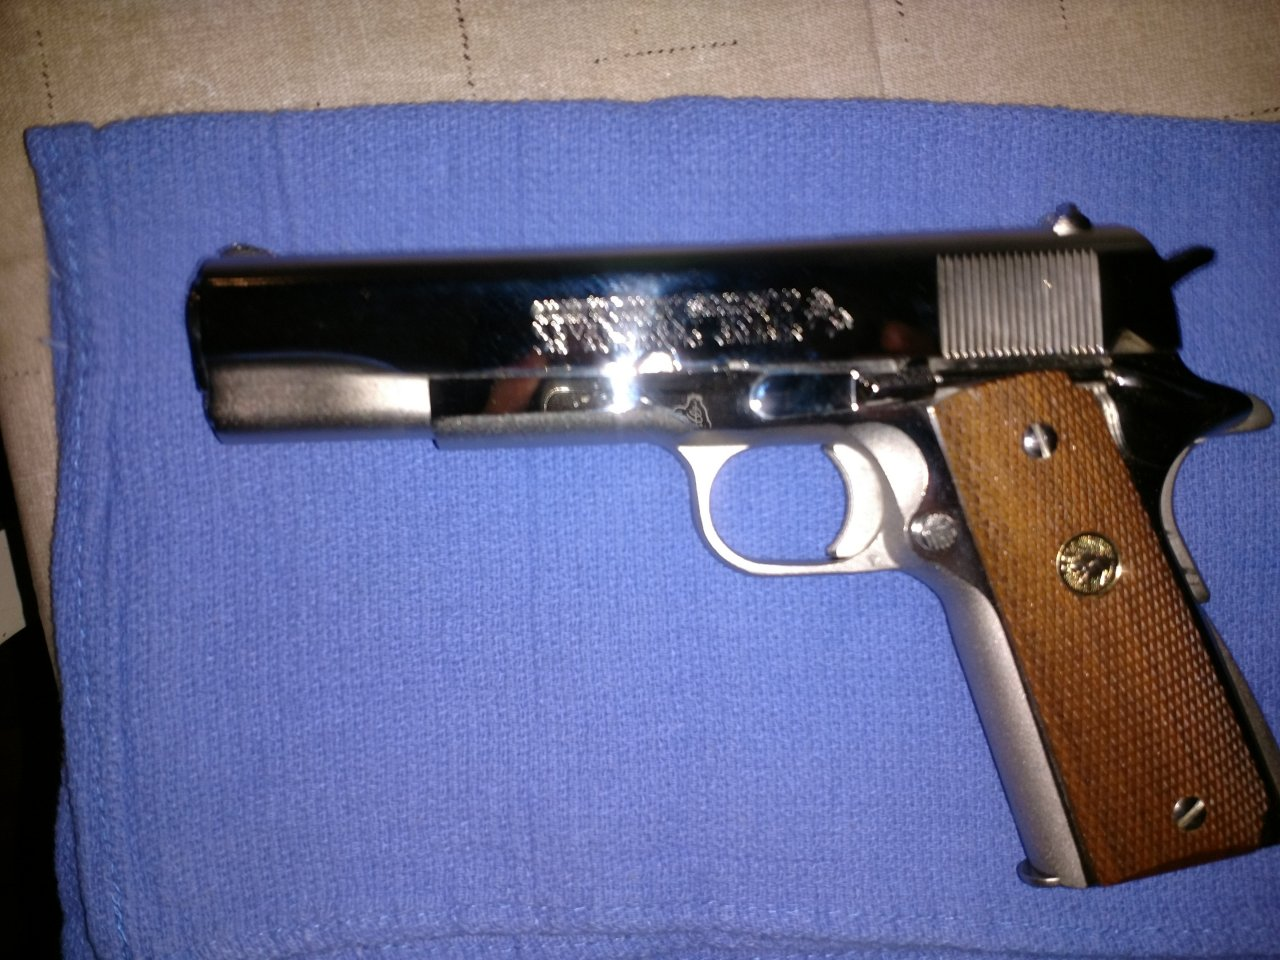 Needing To Find Out Value On My Nickel Plated 1911 Colt 70